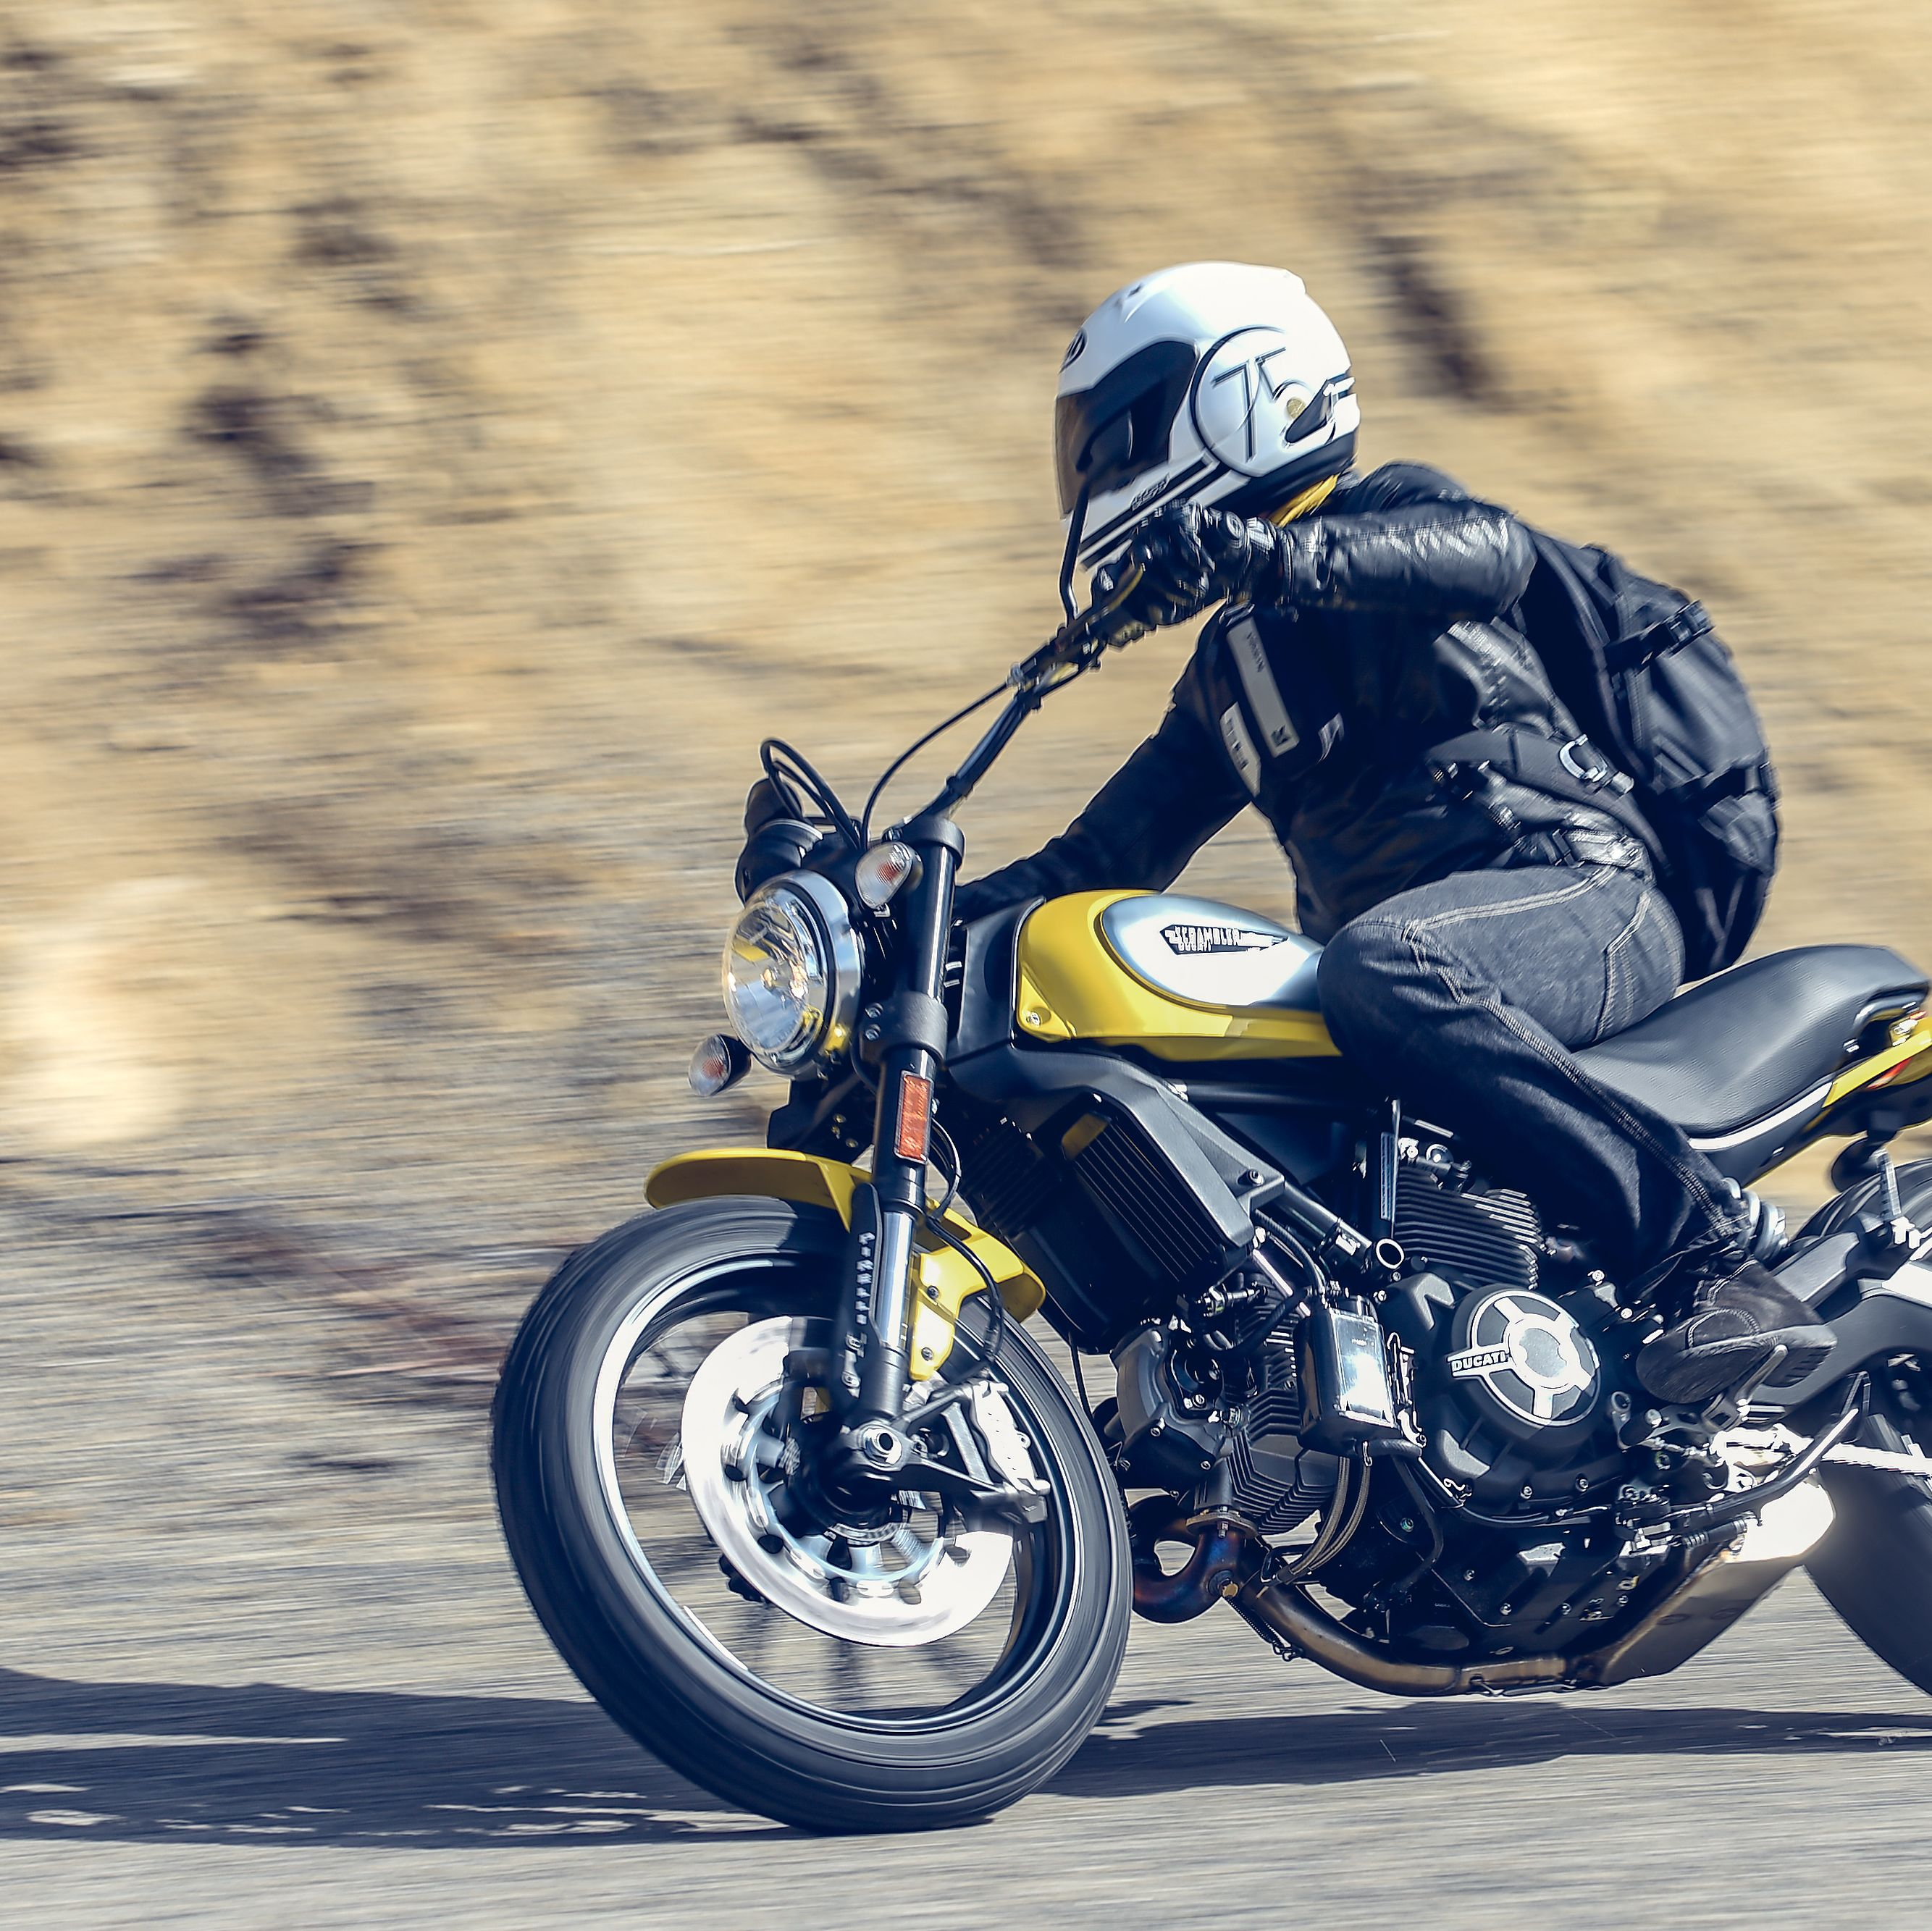 2015 Ducati Scrambler First Ride Review Photo Gallery